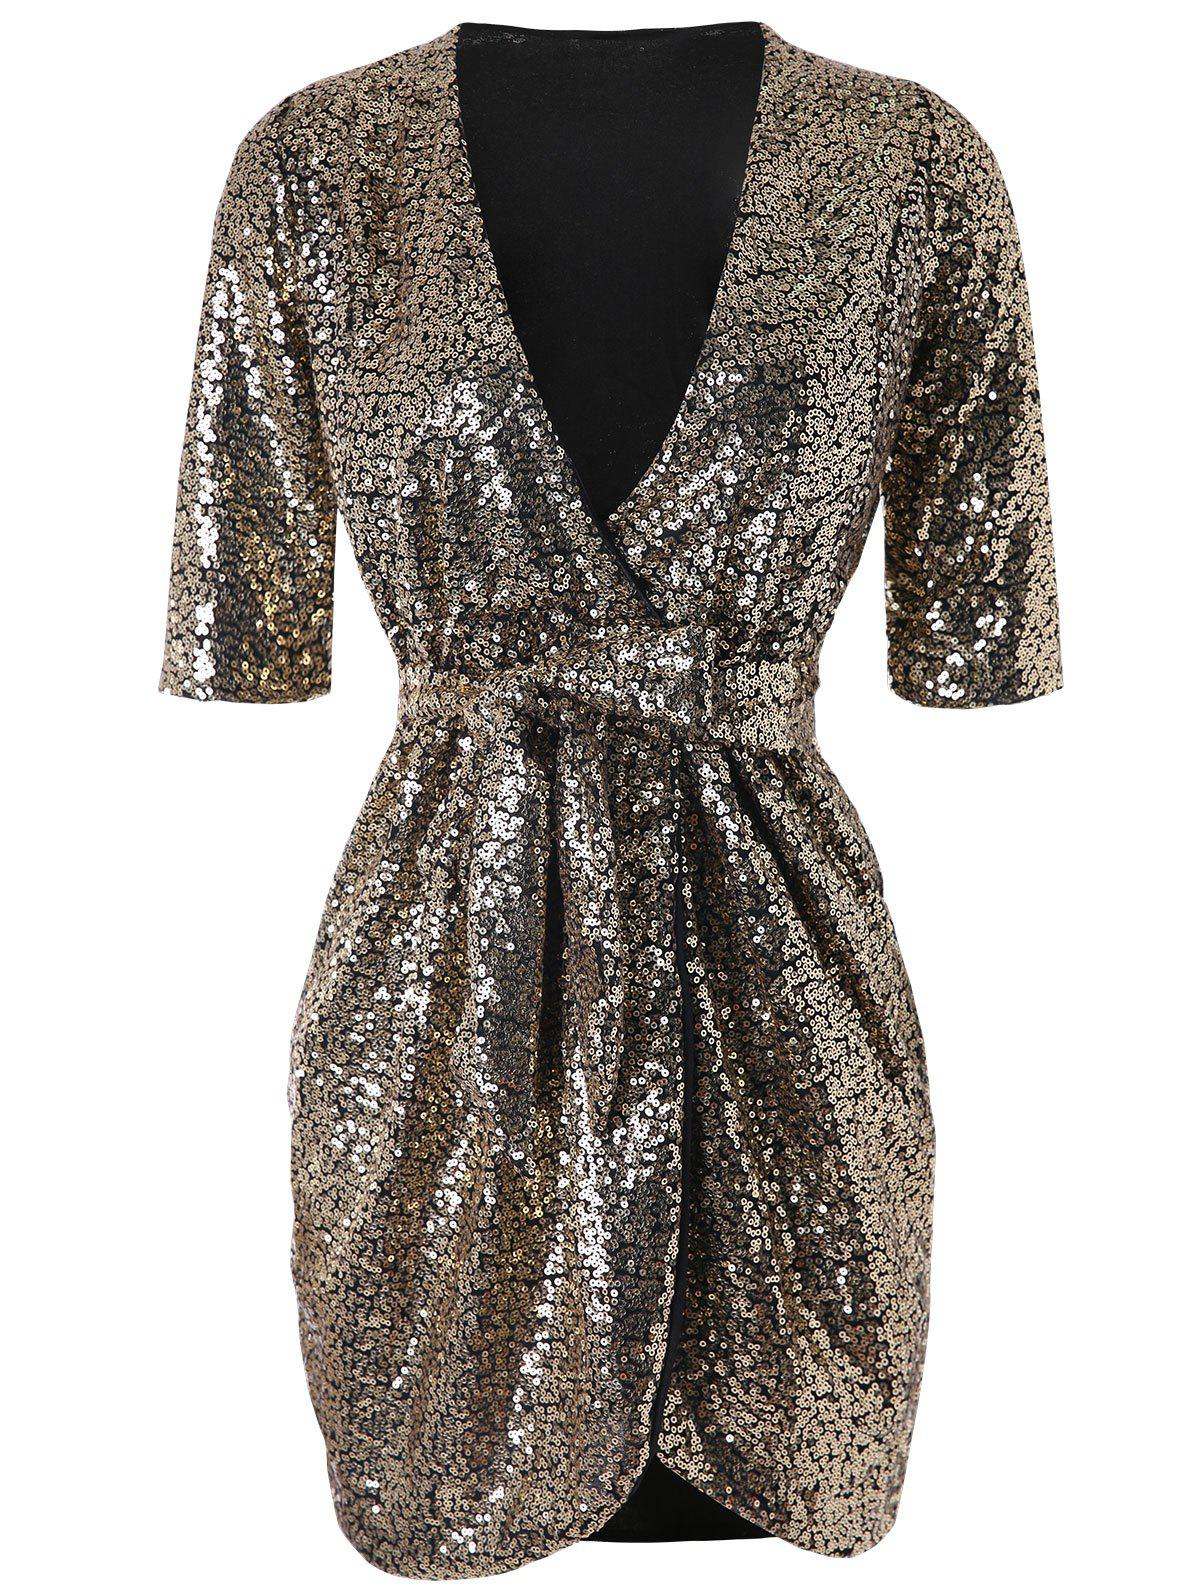 Latest Belted Sequined Bodycon Dress